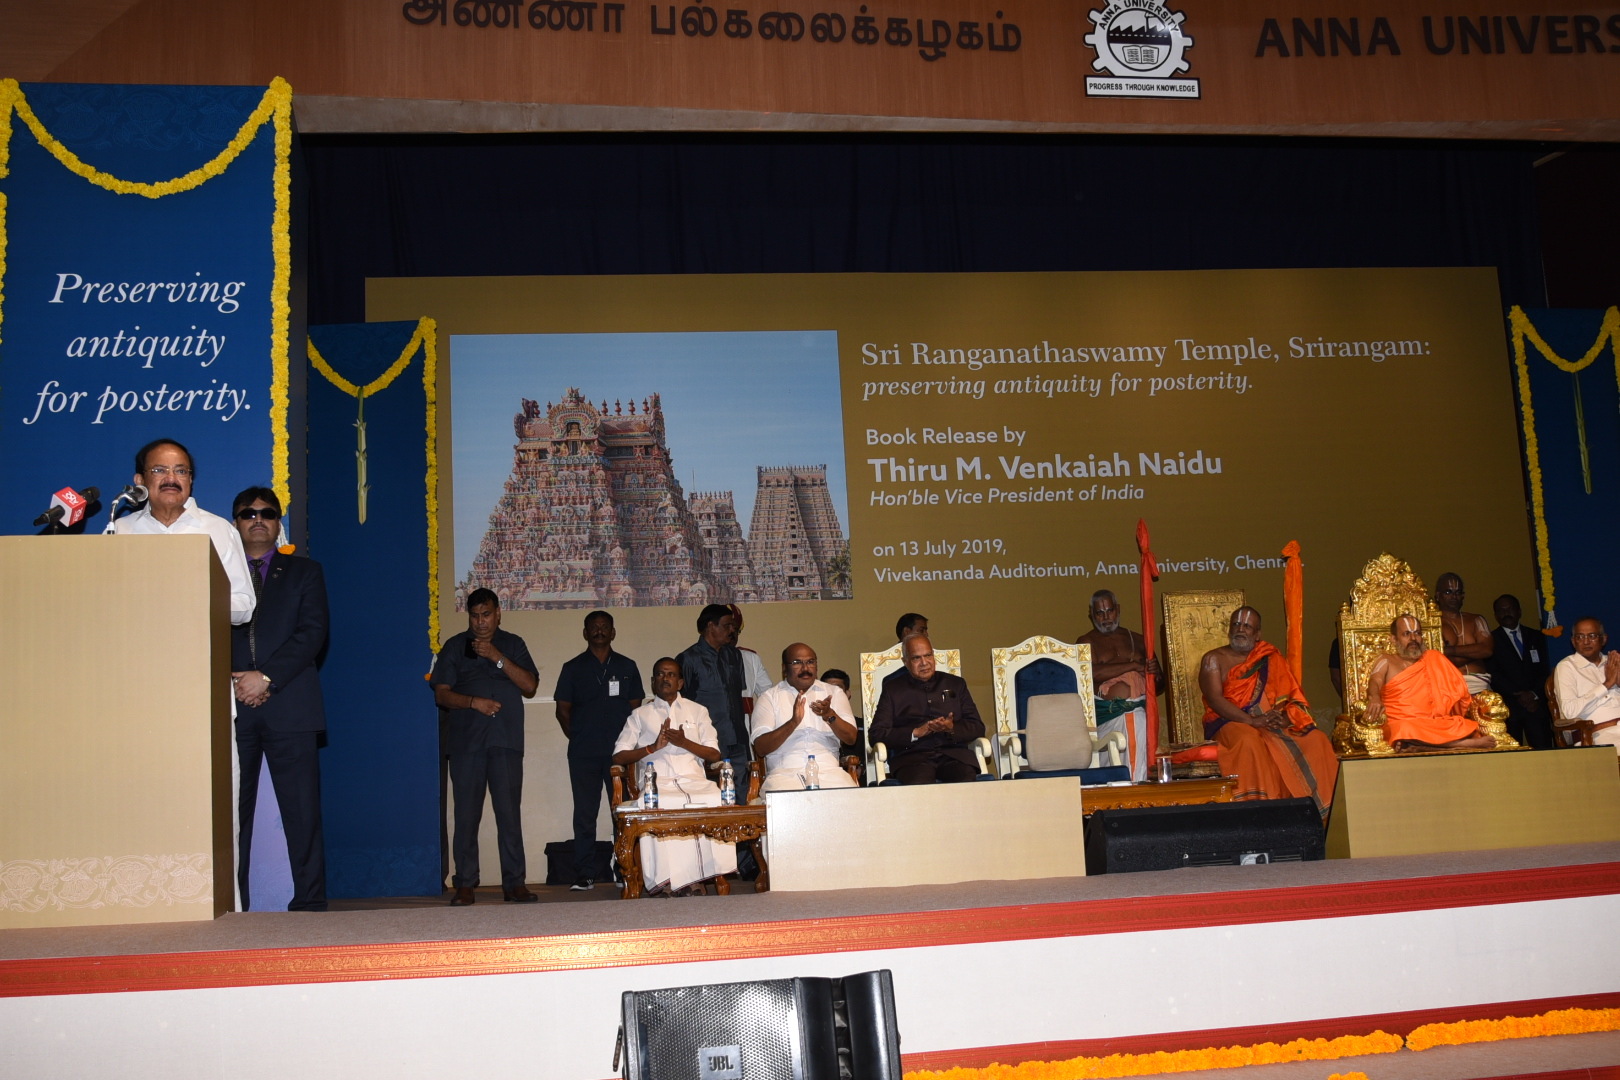 The Vice President Shri. M Venkaiah Naidu, addressing the gathering at the release of the coffee table book 'Sri Ranganathaswamy temple, Srirangam, Preserving Antiquity for Posterity', in Chennai, on 13th July 2019.